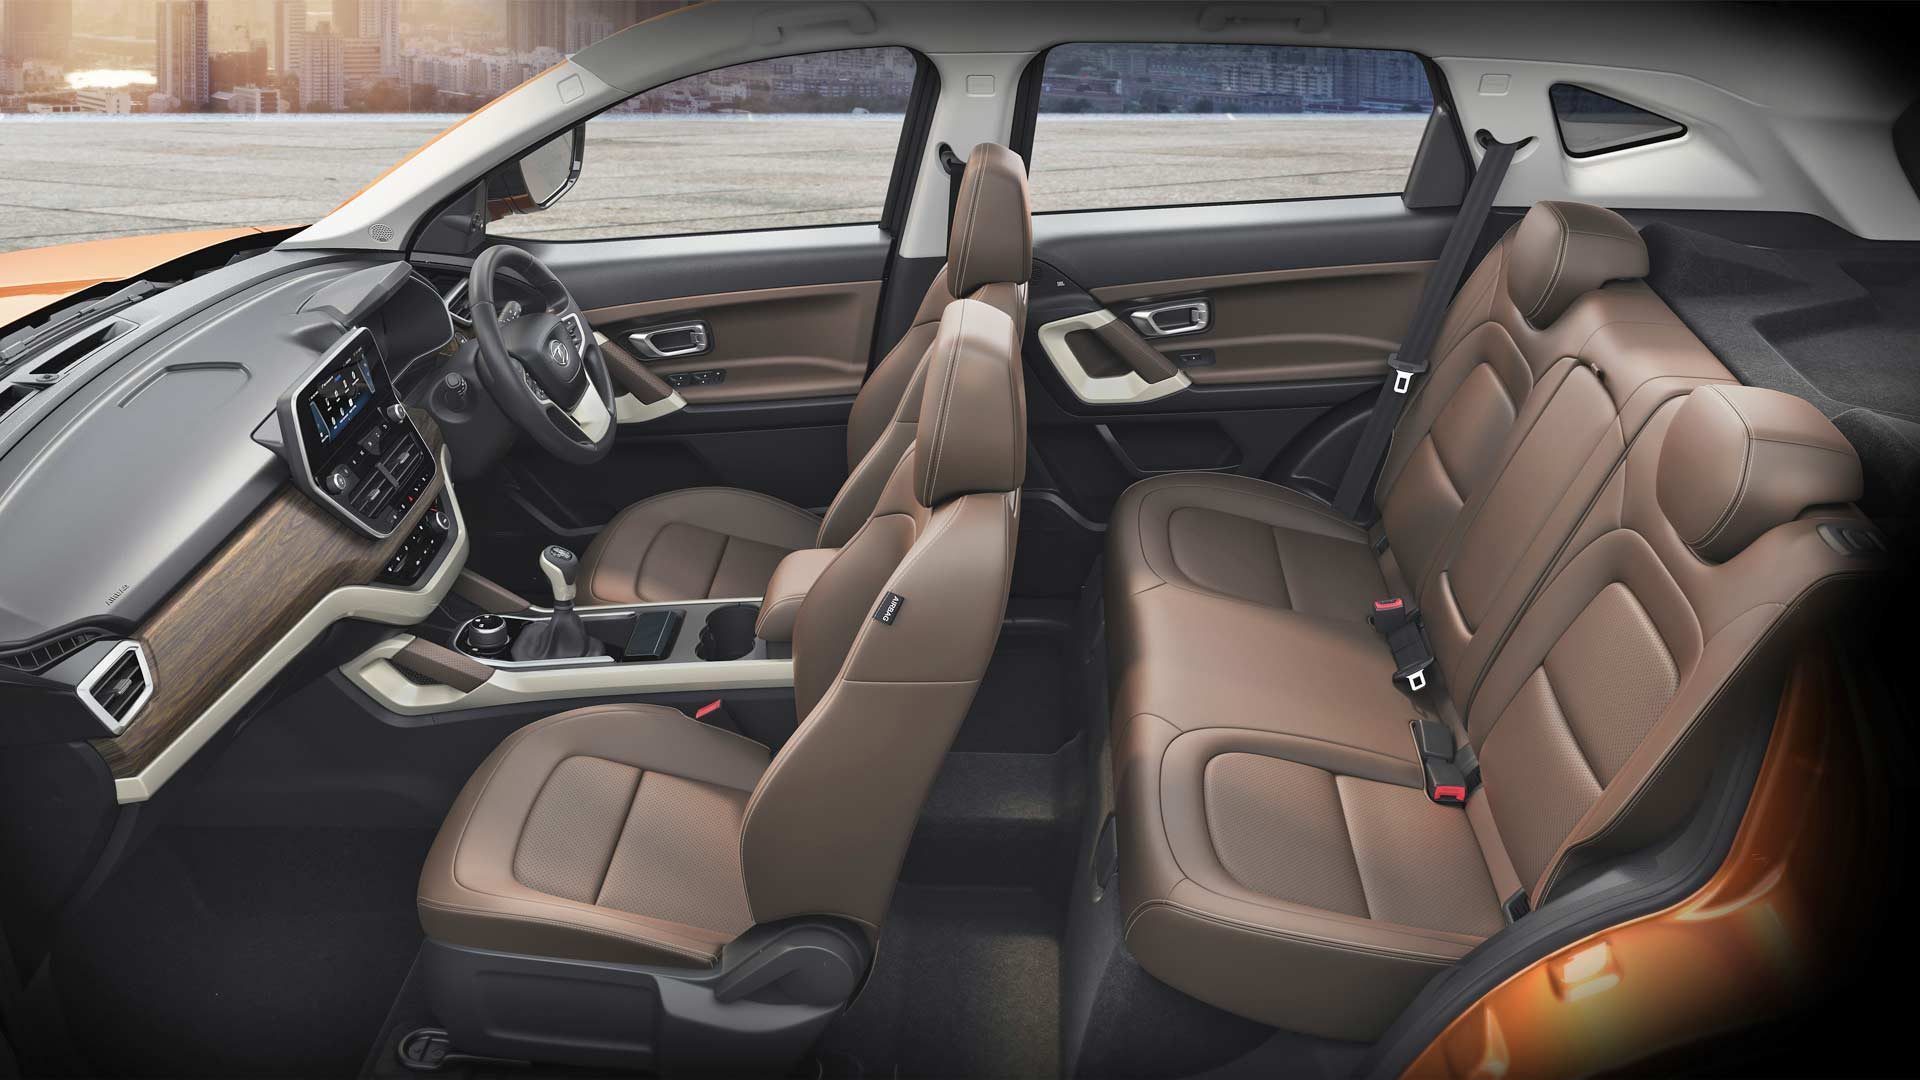 Tata-Harrier-Interior_3